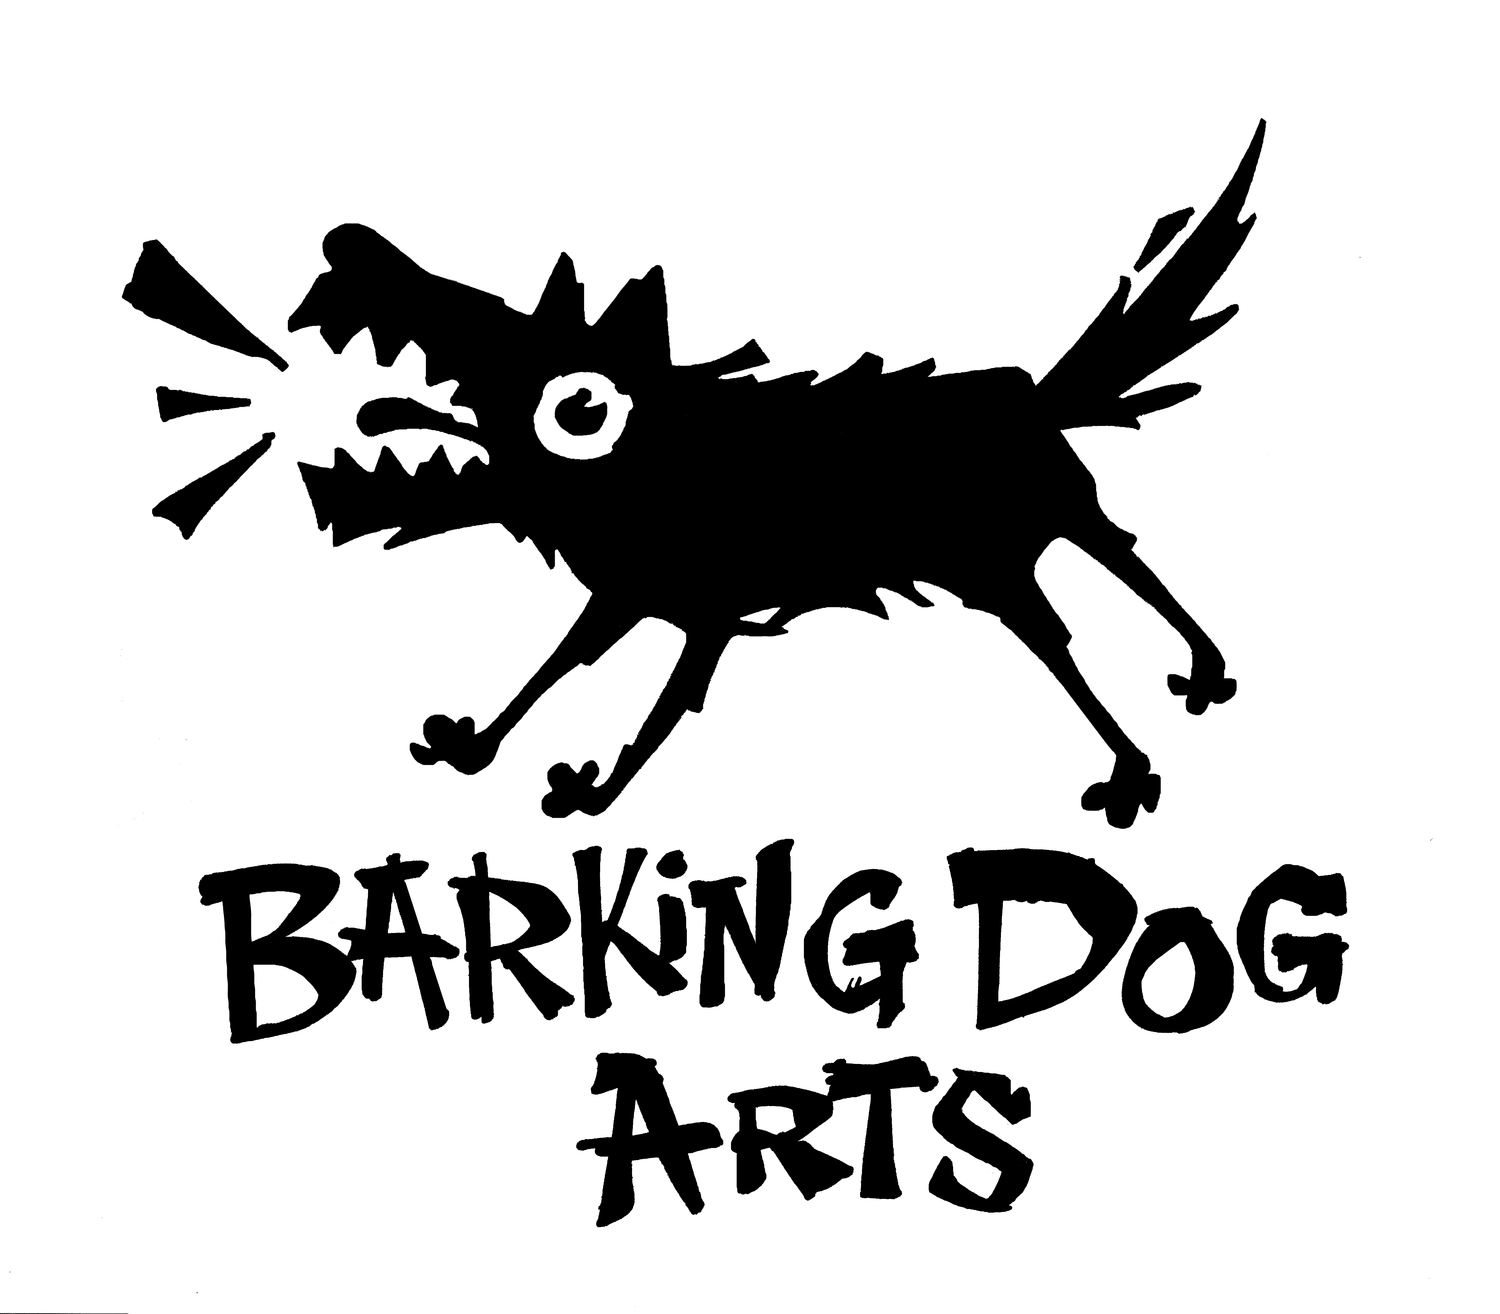 Barking Dog Arts